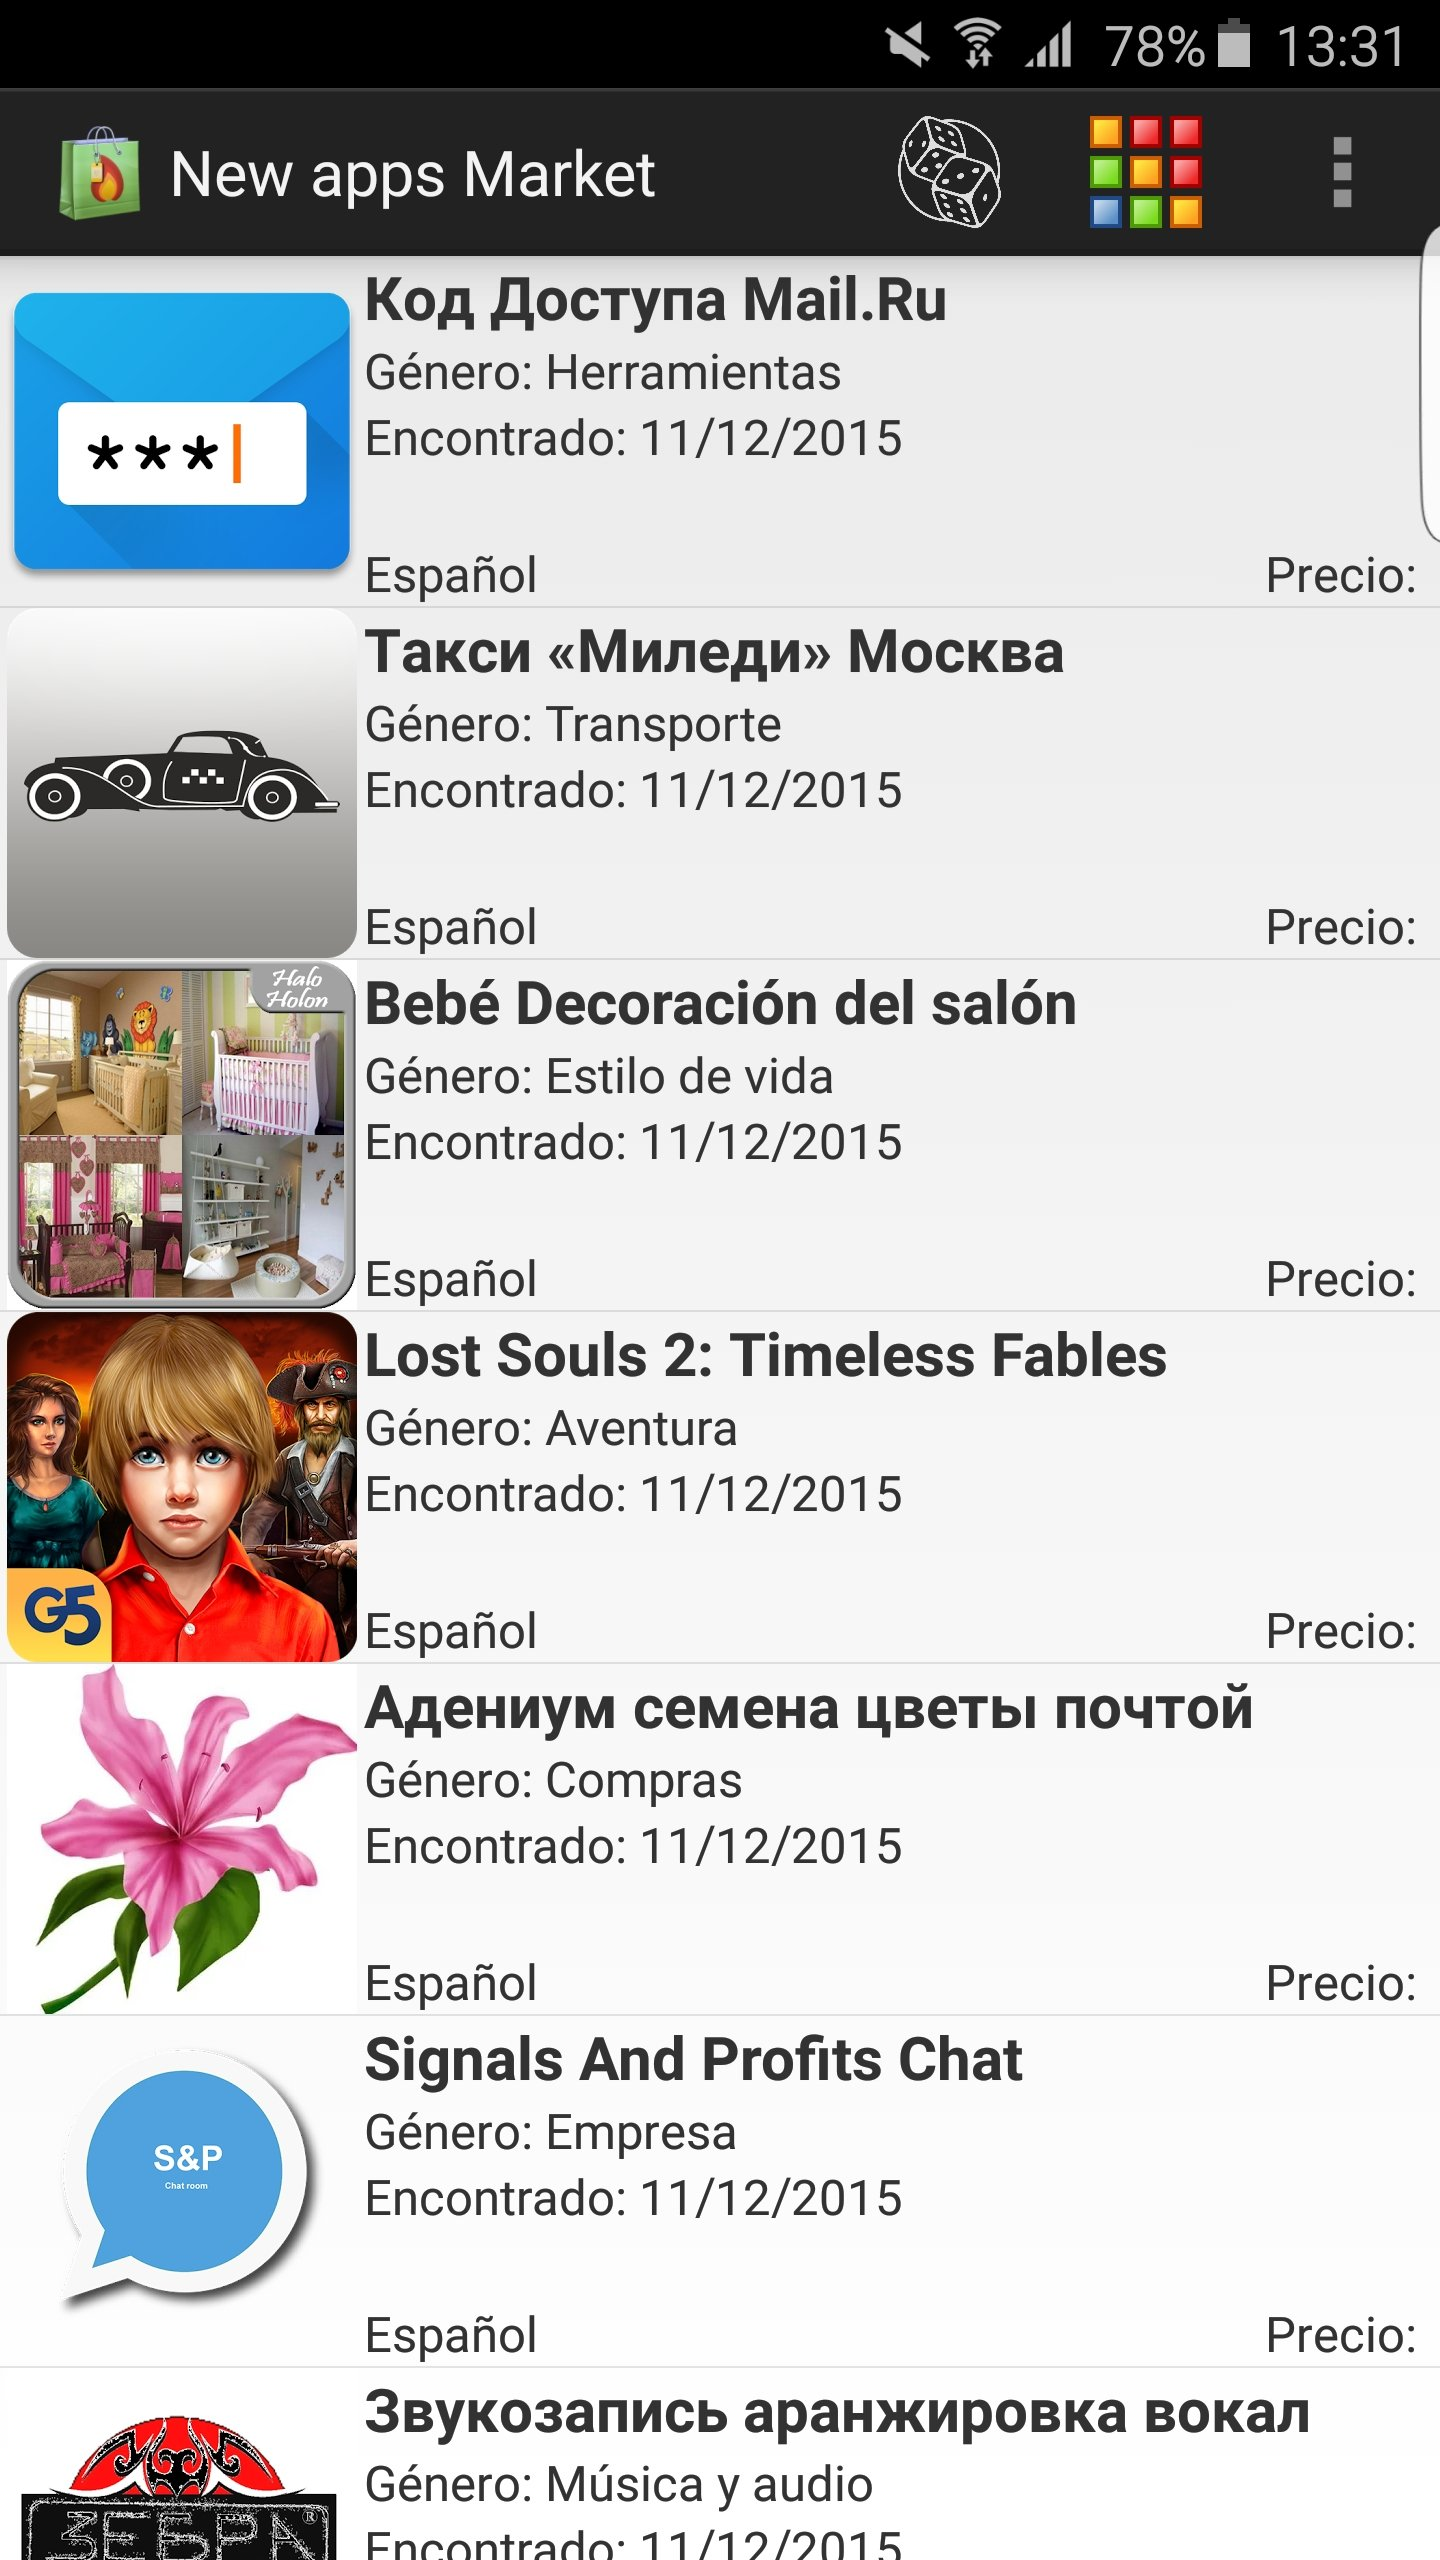 New style market apk downloads software modaco.